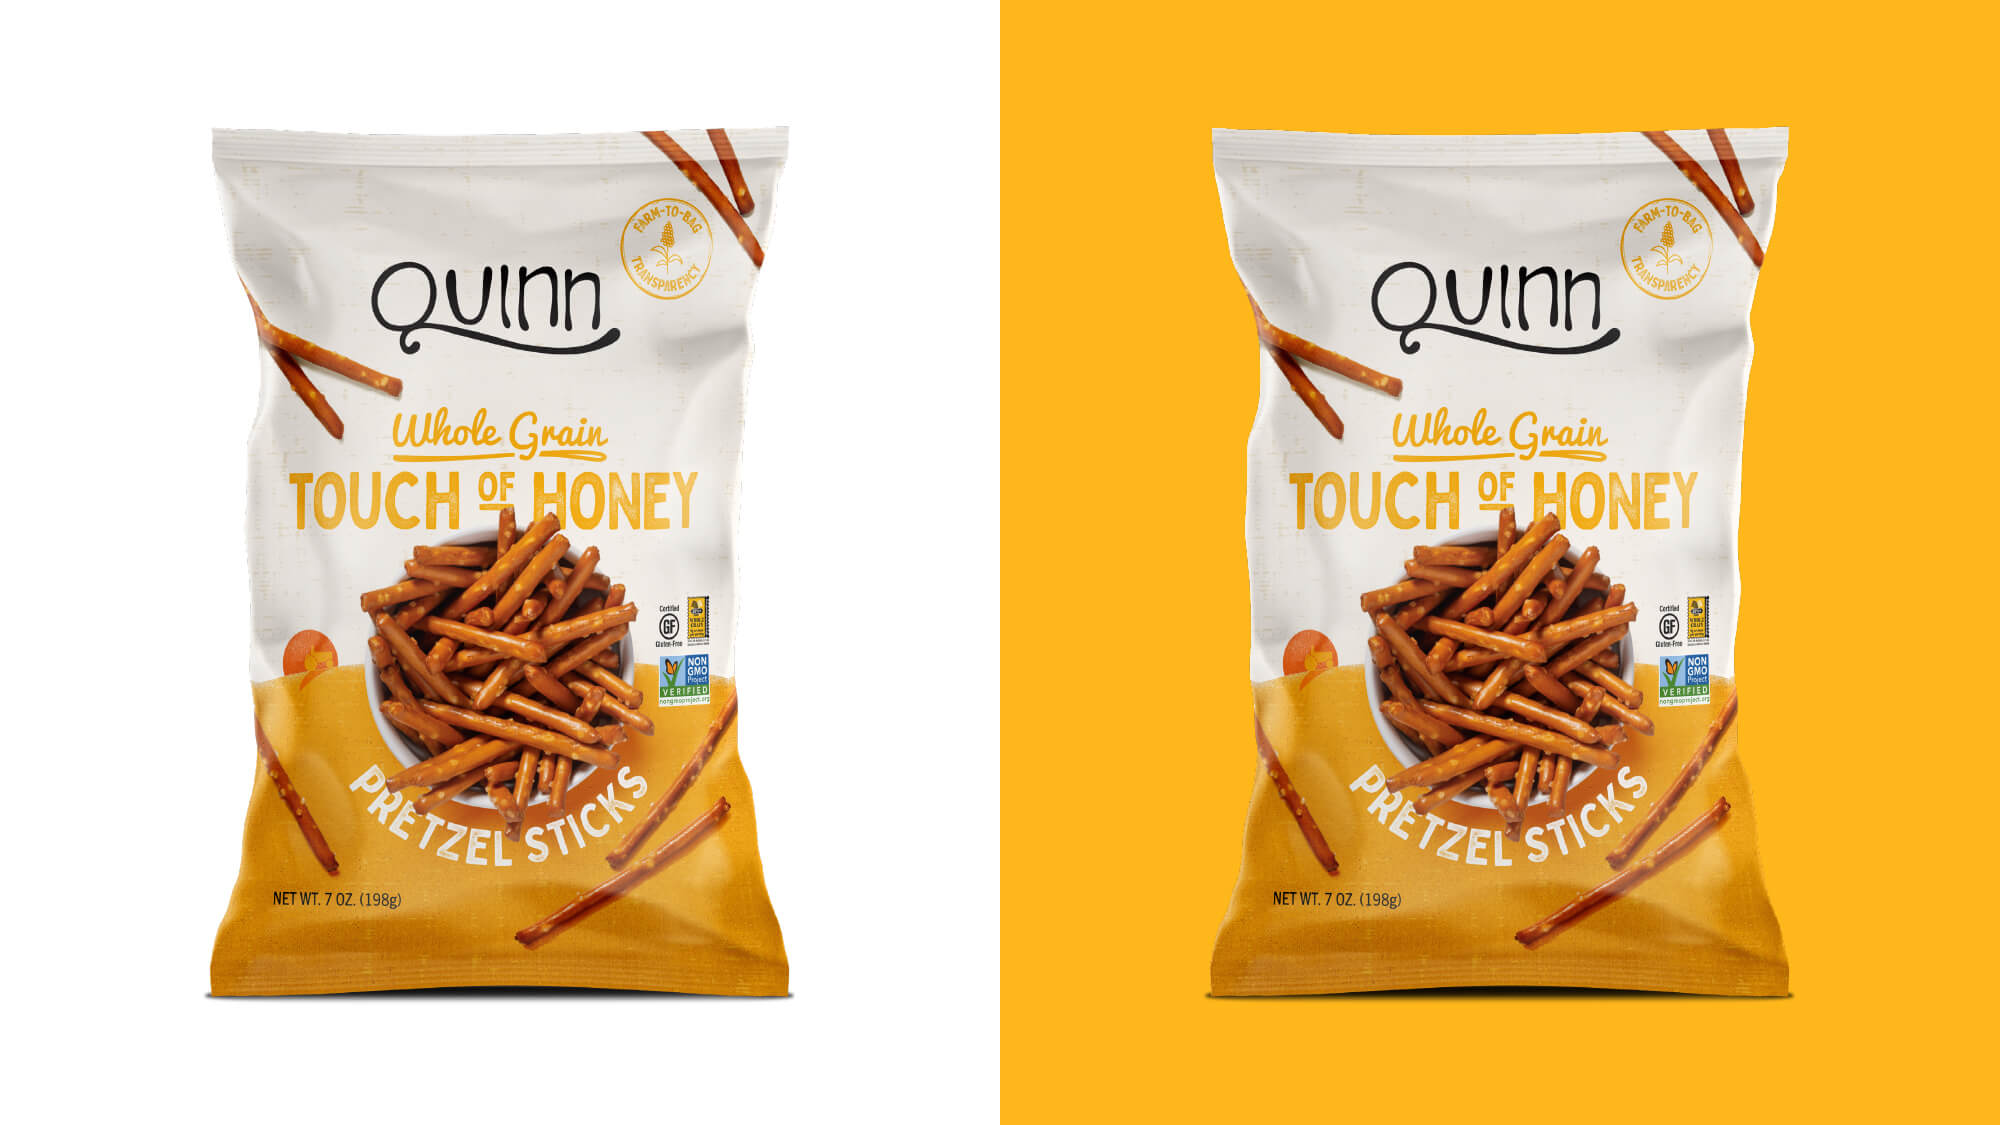 Quinn Pretzels Packaging - Whole Grain Touch of Honey Pretzel Sticks